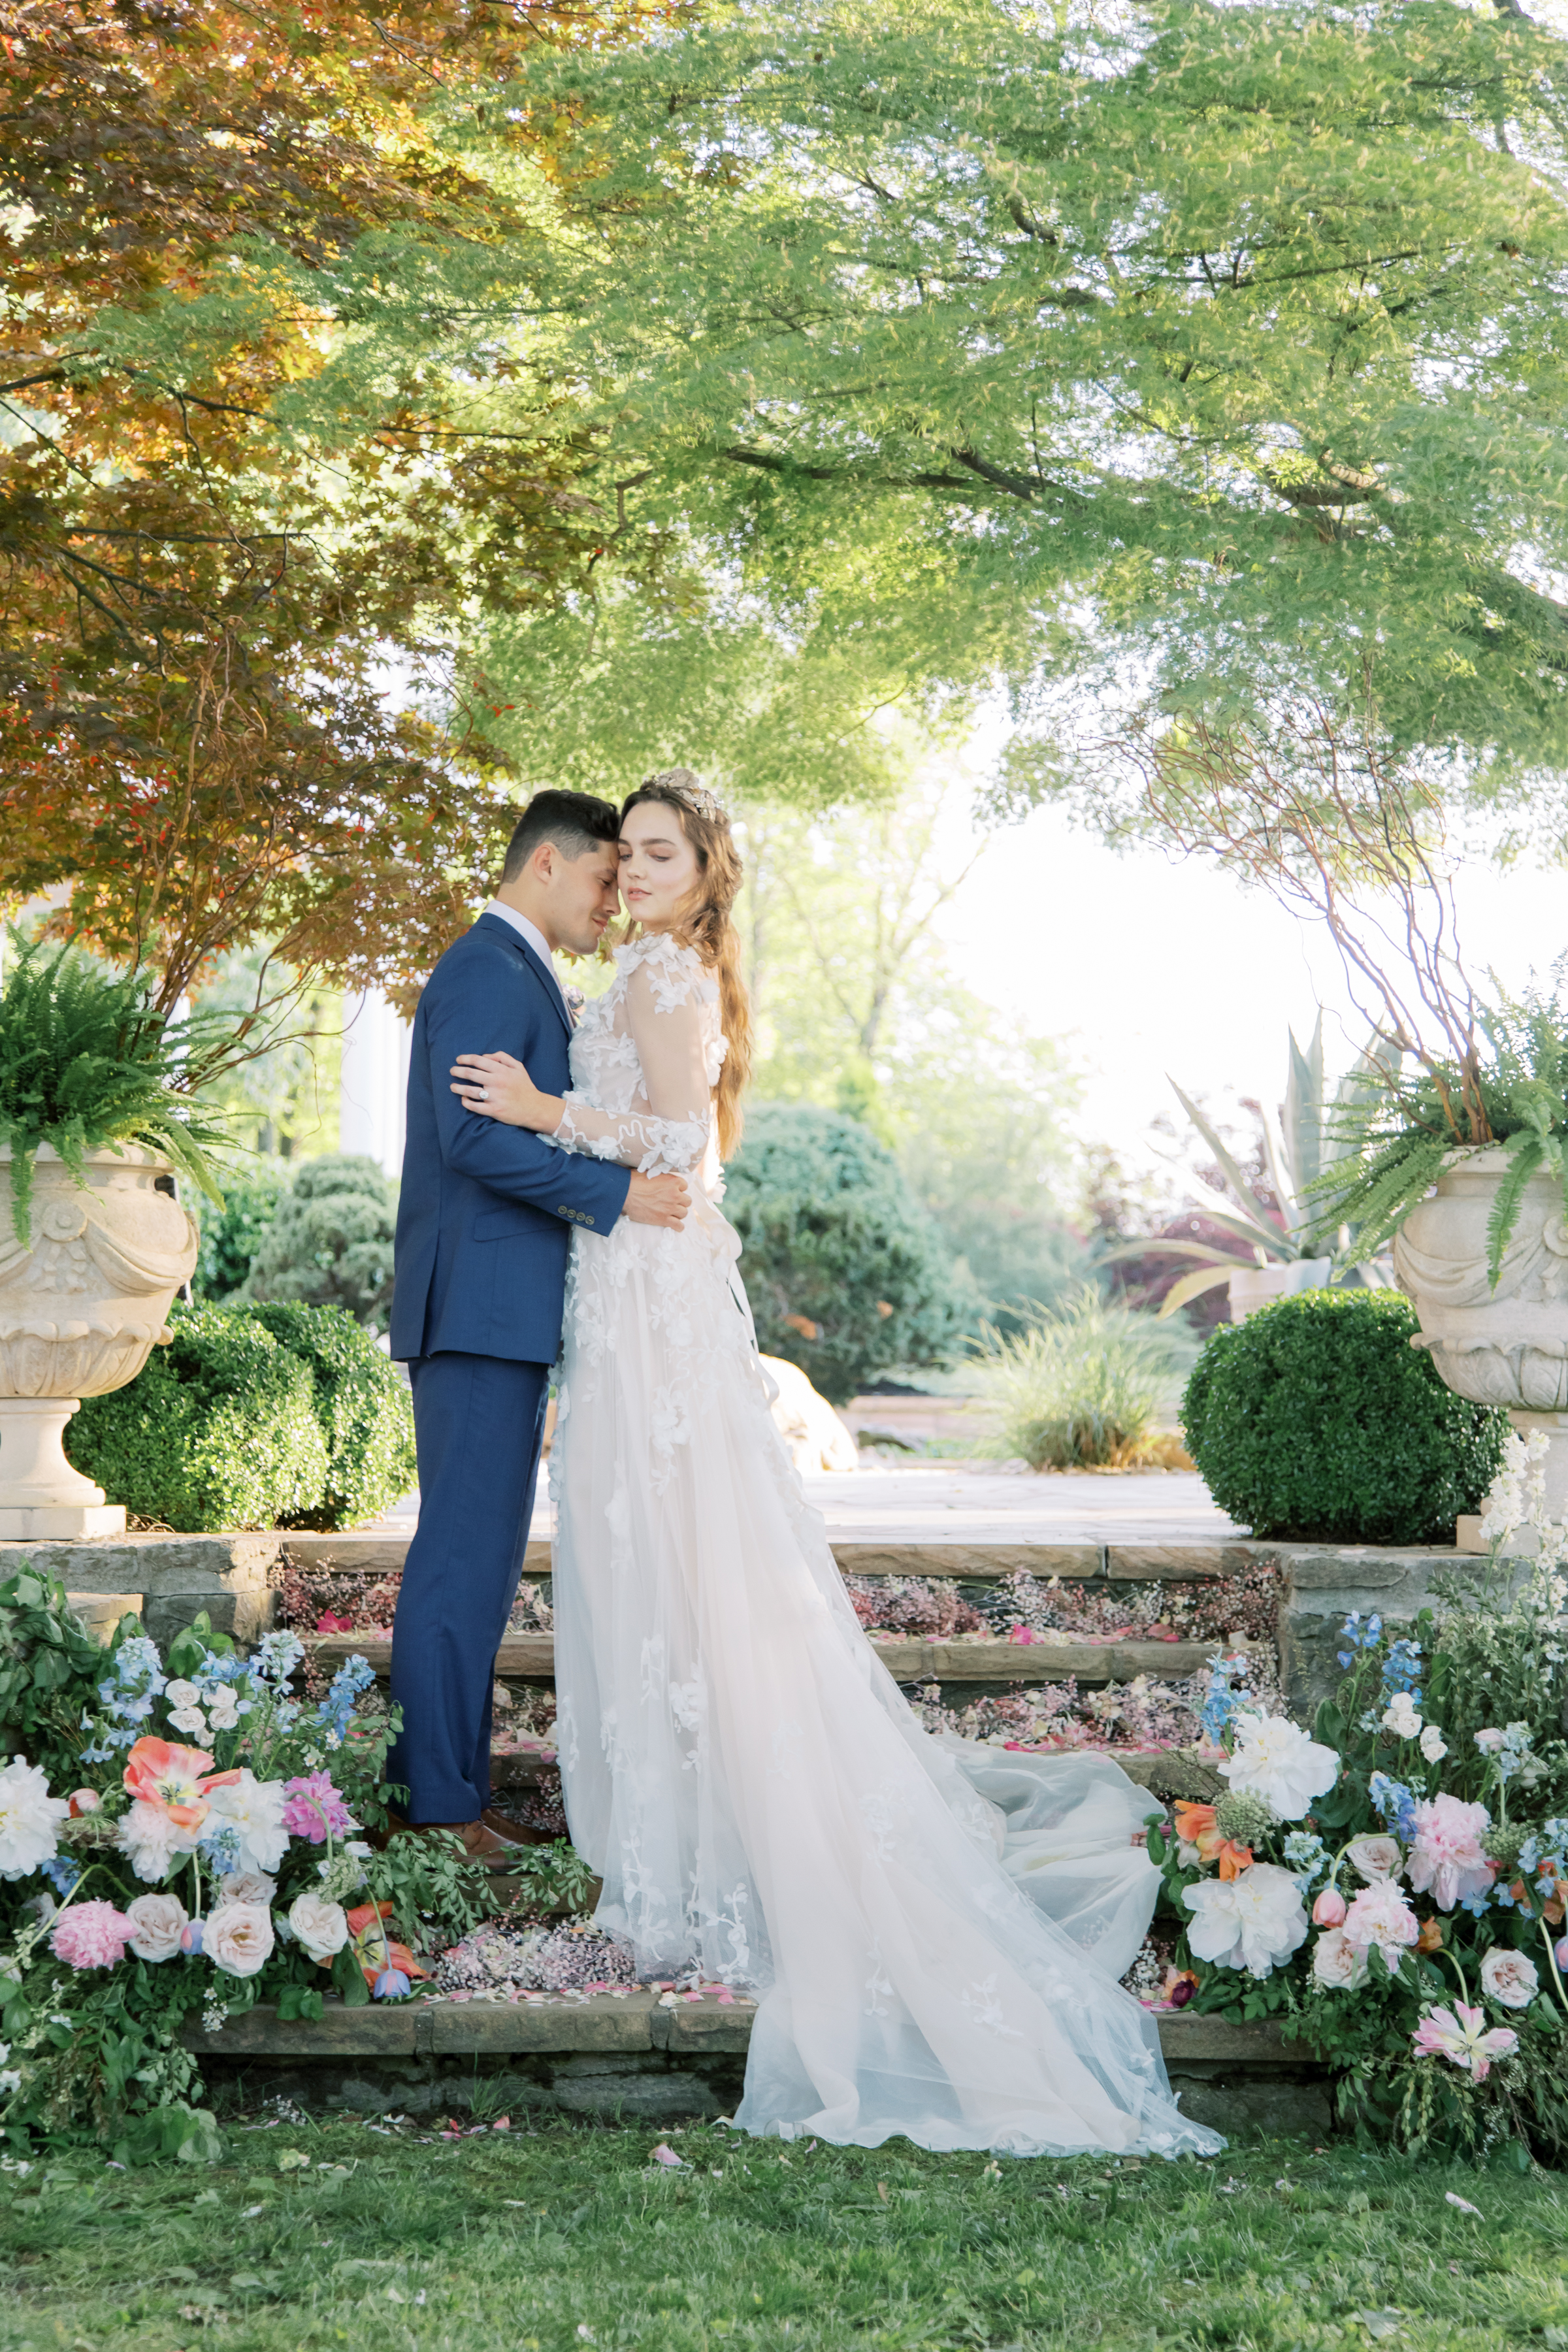 Faith Roper Photography and East Made Co Nashville wedding planner at the Estate at Cherokee Dock wedding inspired by Monet Hybrid Co-105.jpg